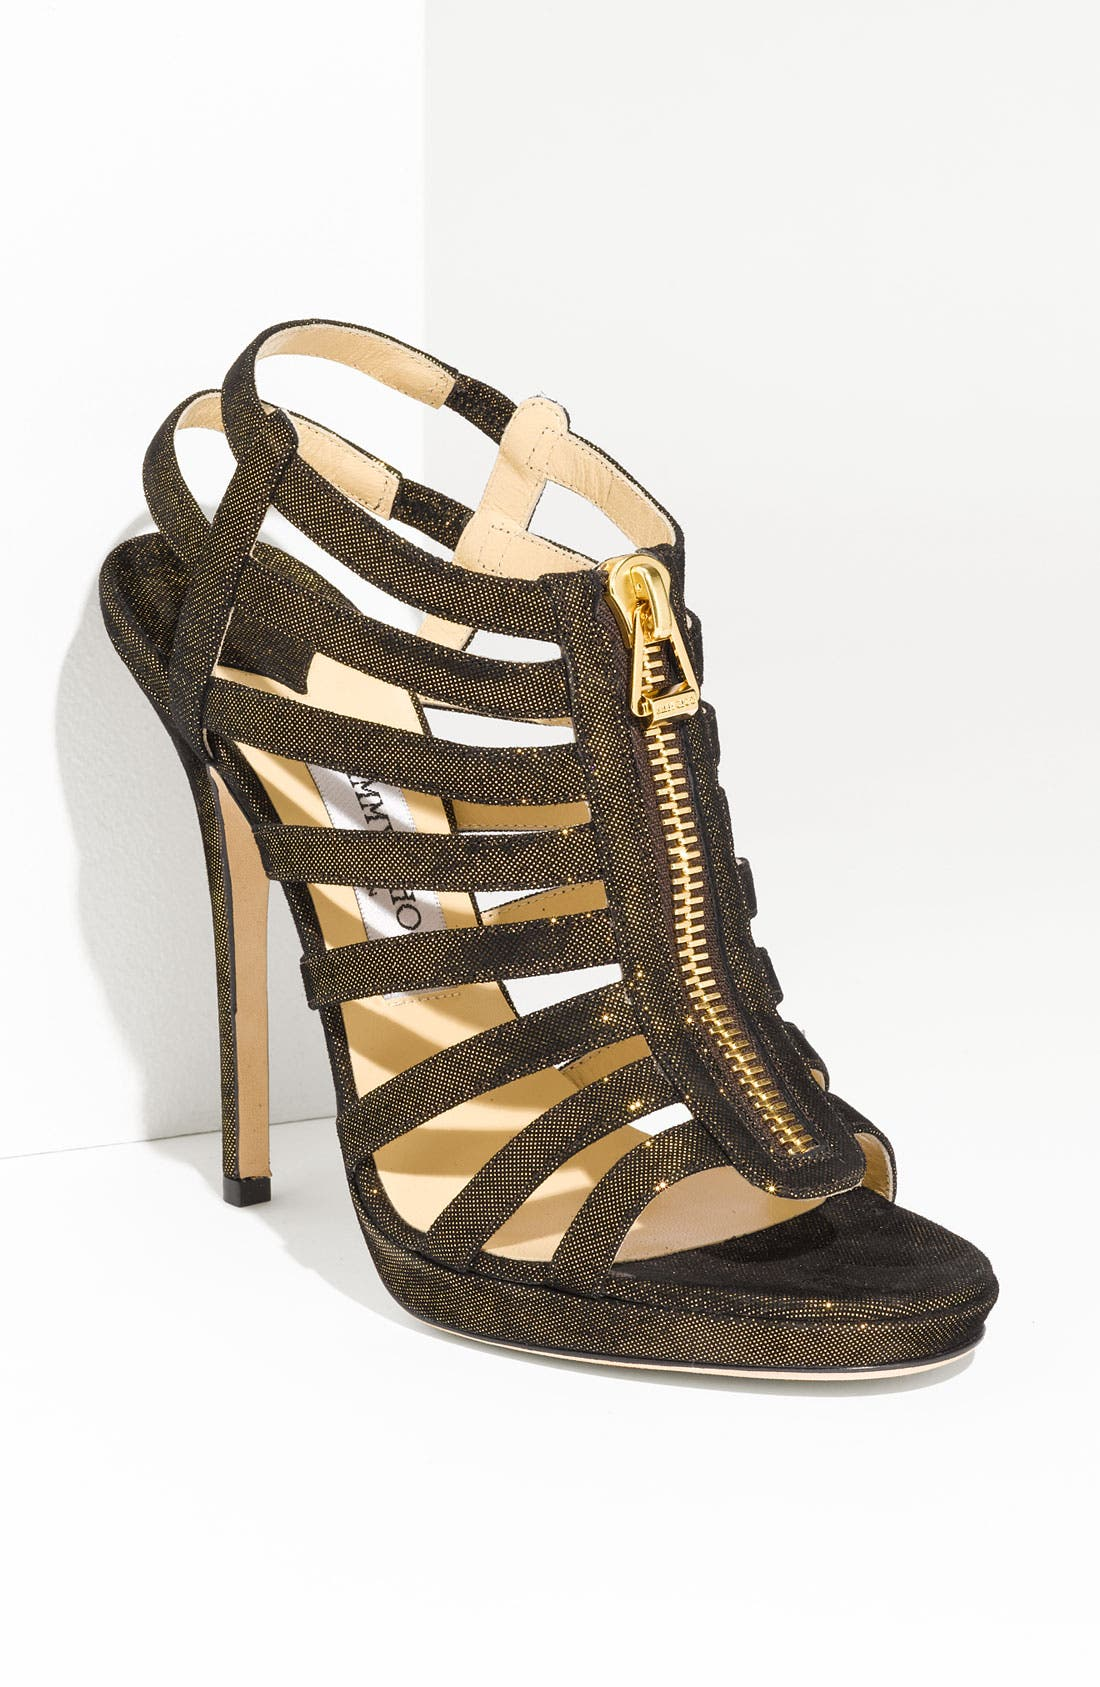 Alternate Image 1 Selected - Jimmy Choo 'Glenys' Glitter Suede Caged Sandal